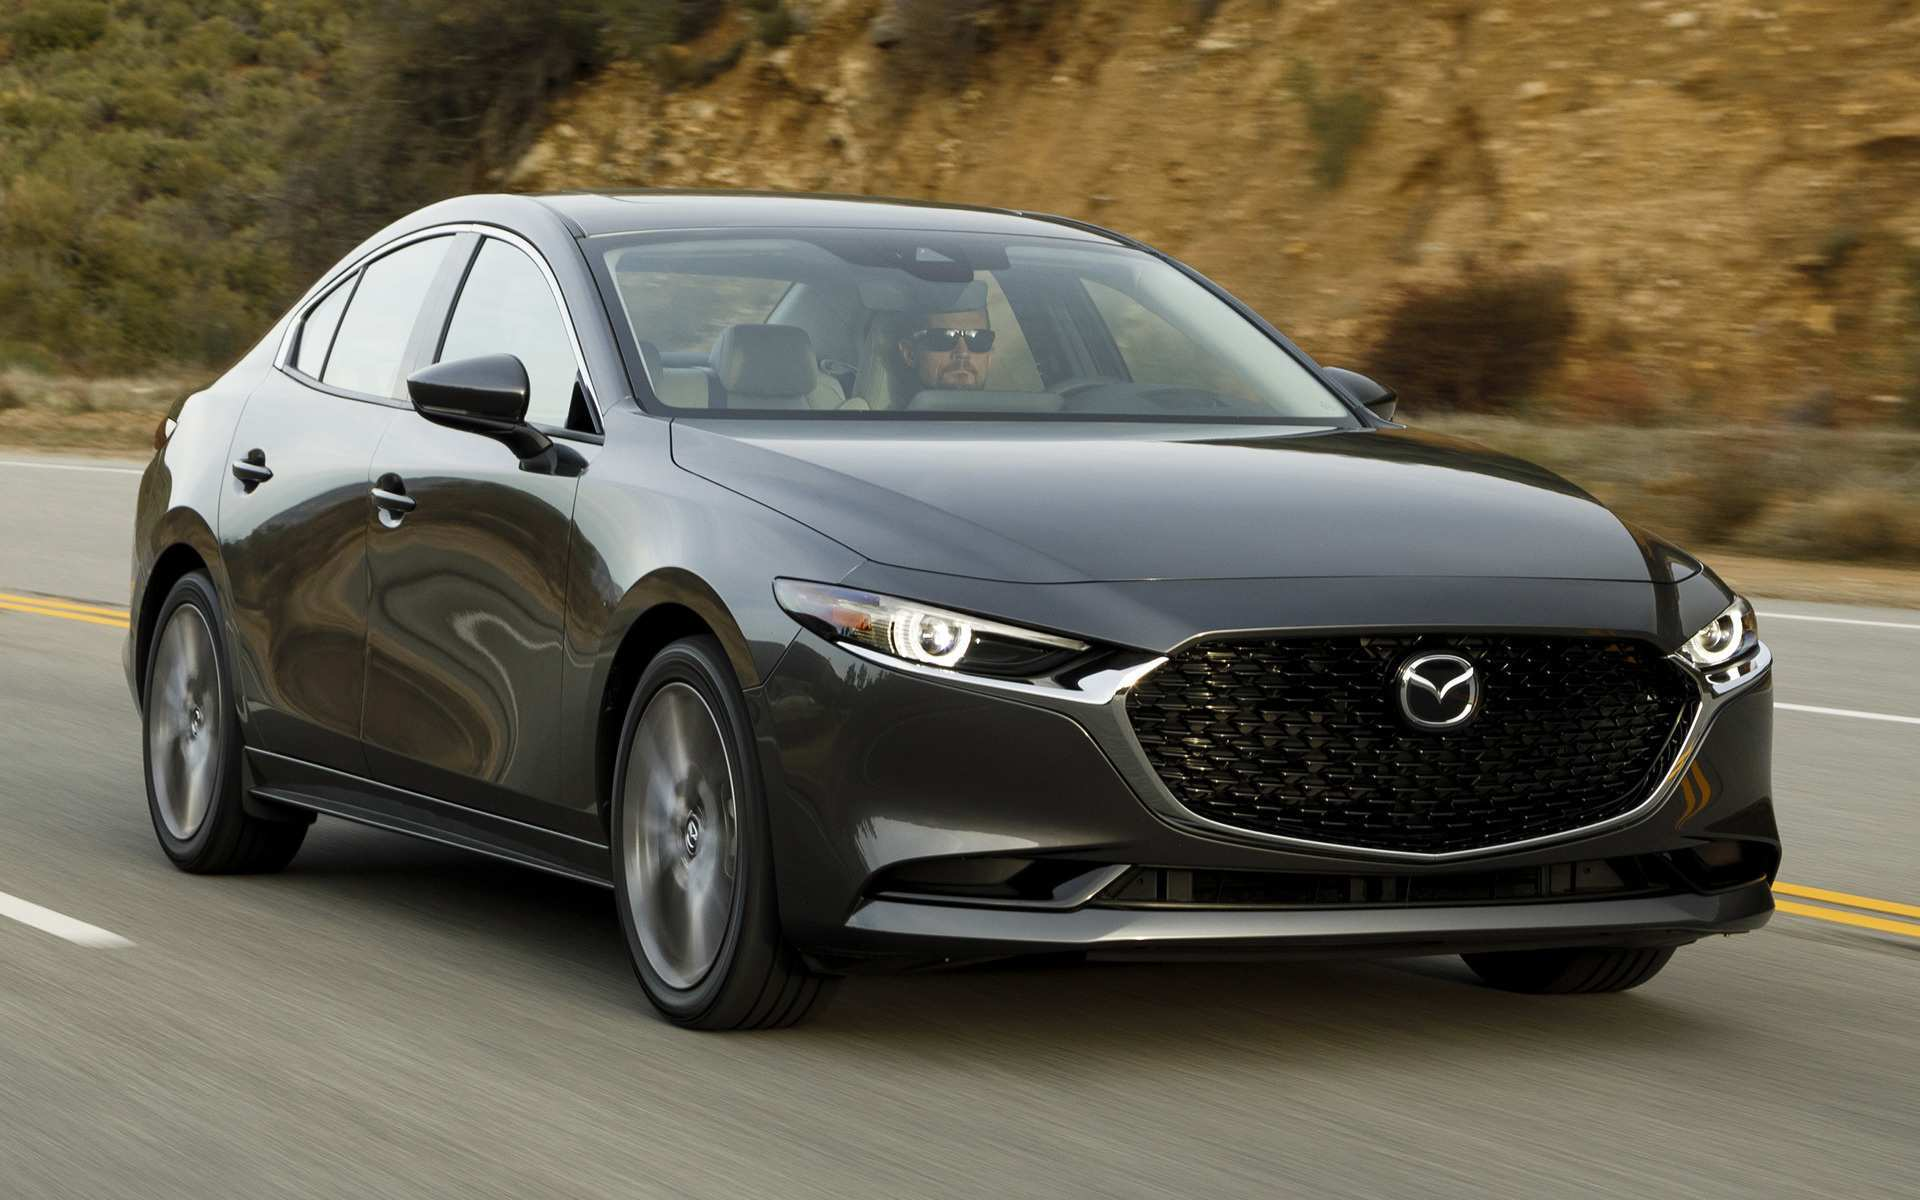 38 All New 2020 Mazda 3 Sedan Price And Review